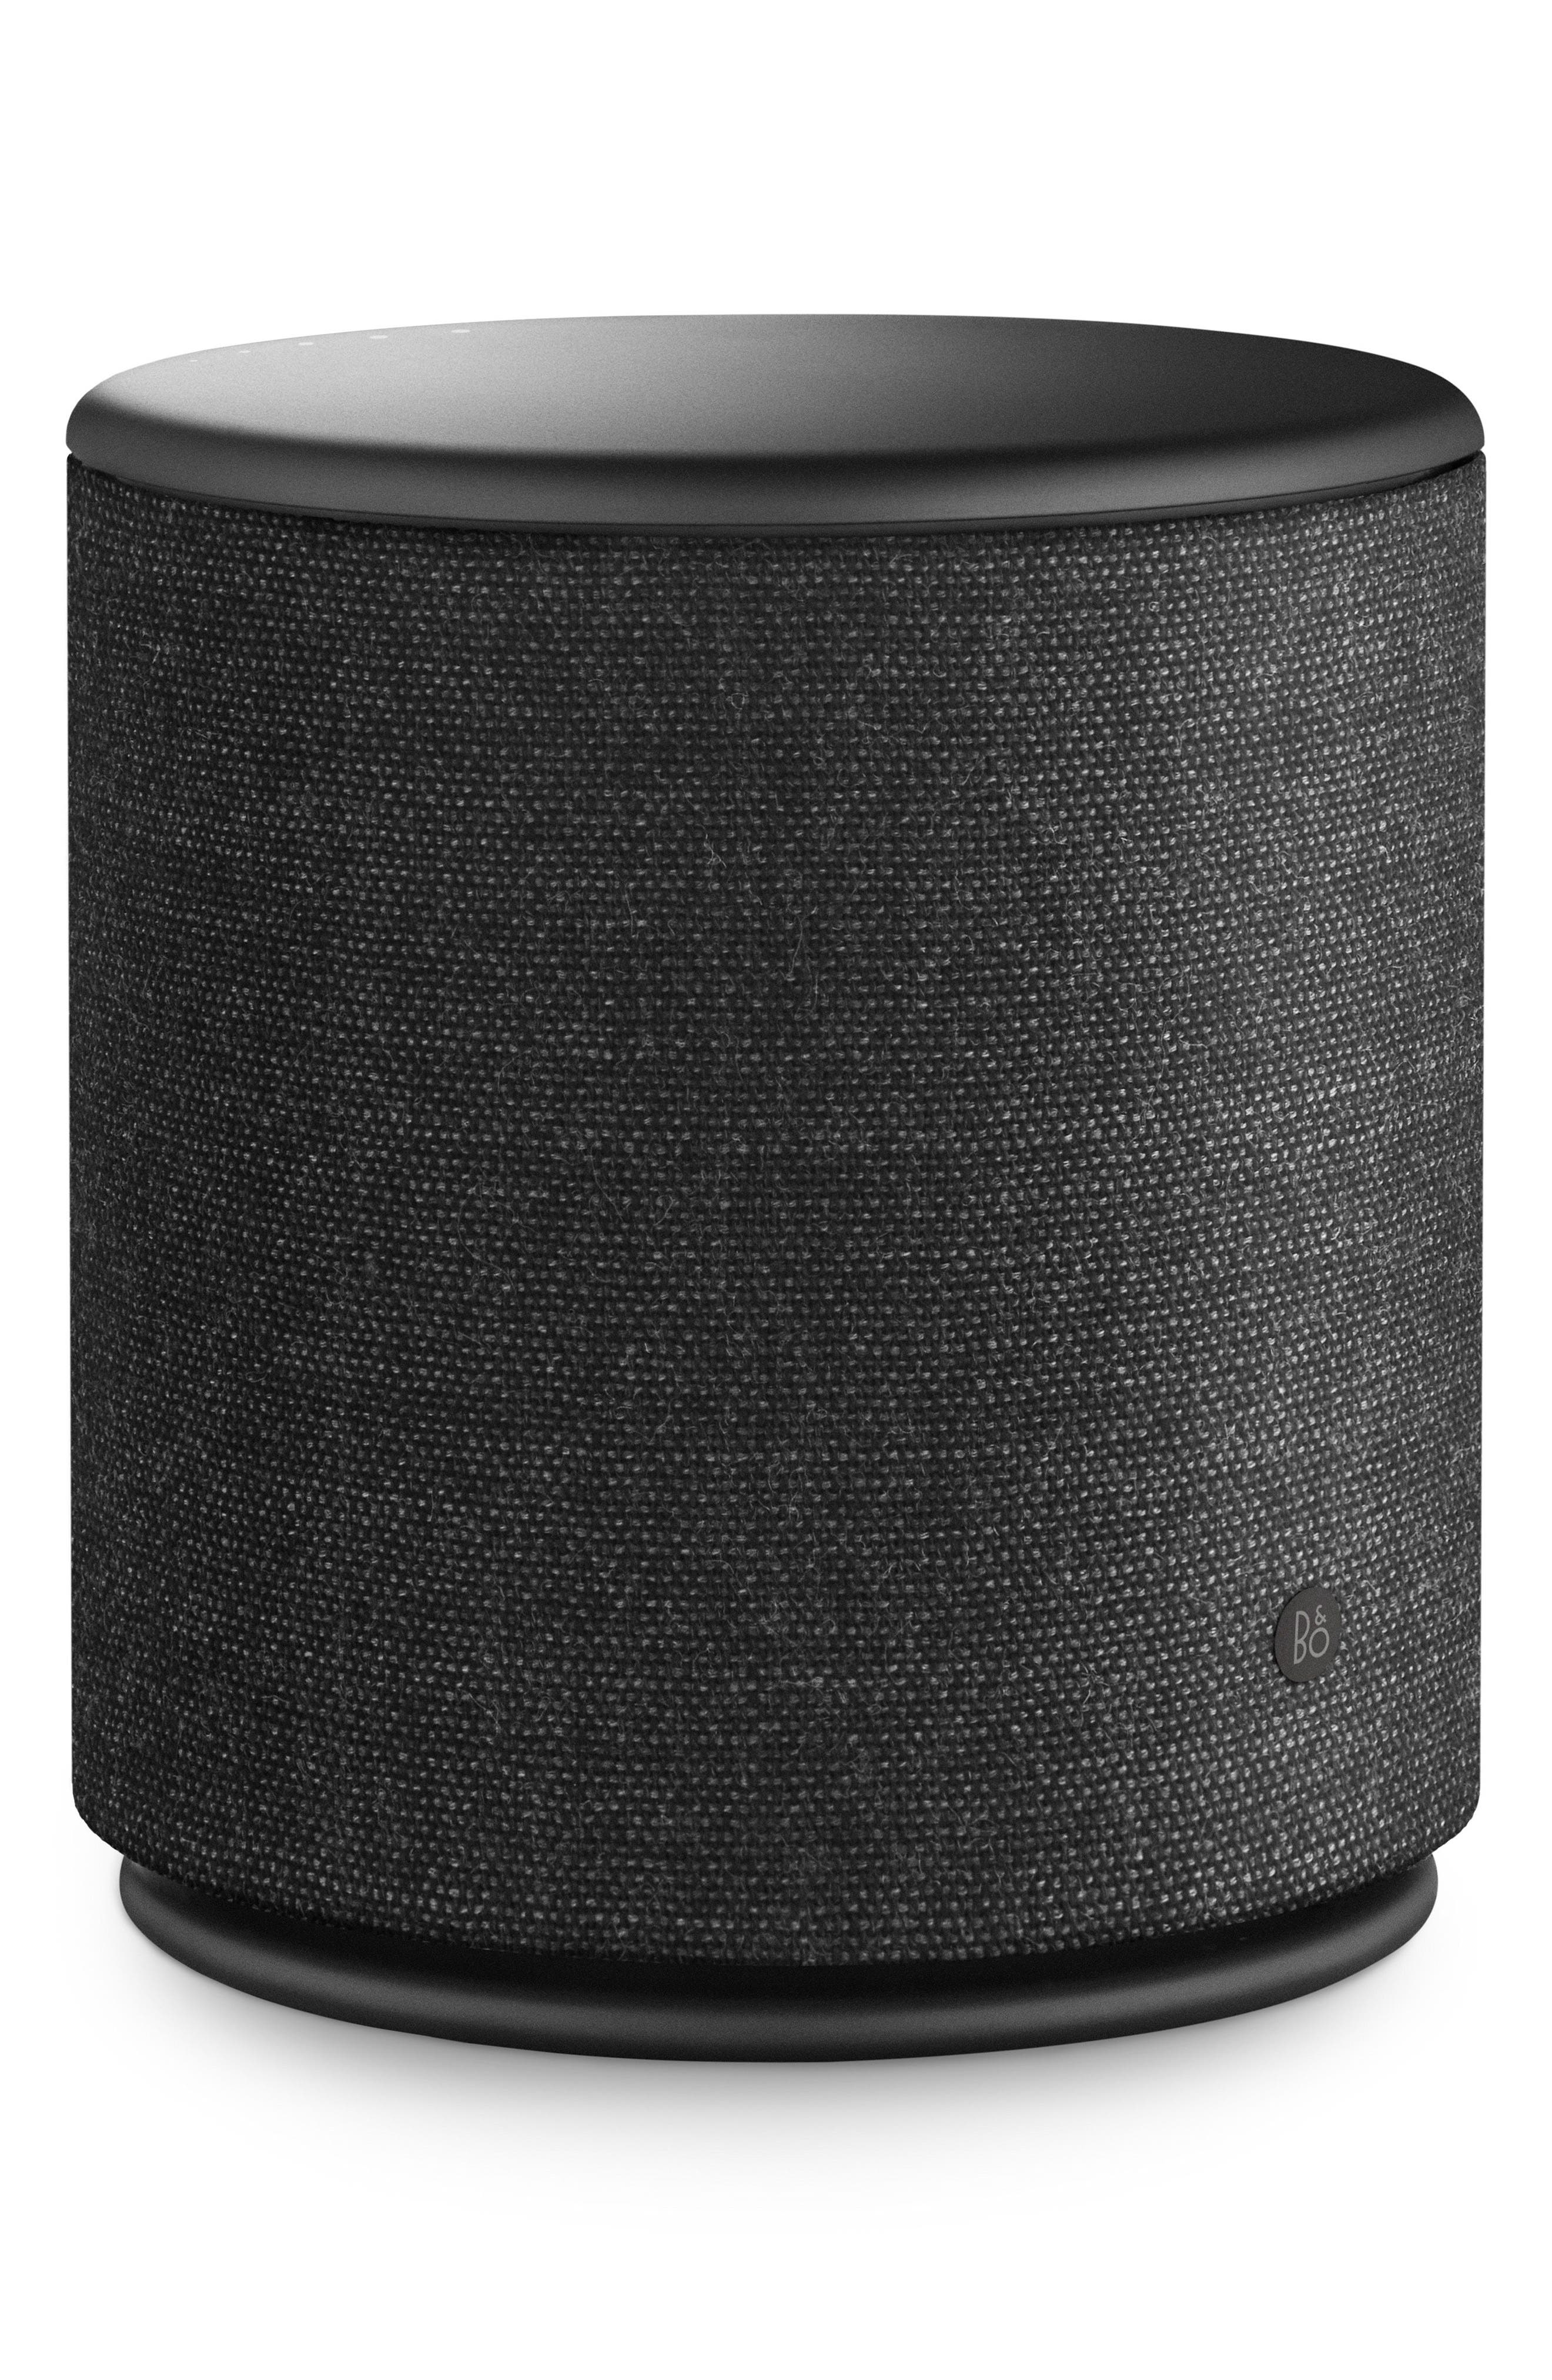 Main Image - B&O PLAY M5 Connected Wireless Speaker